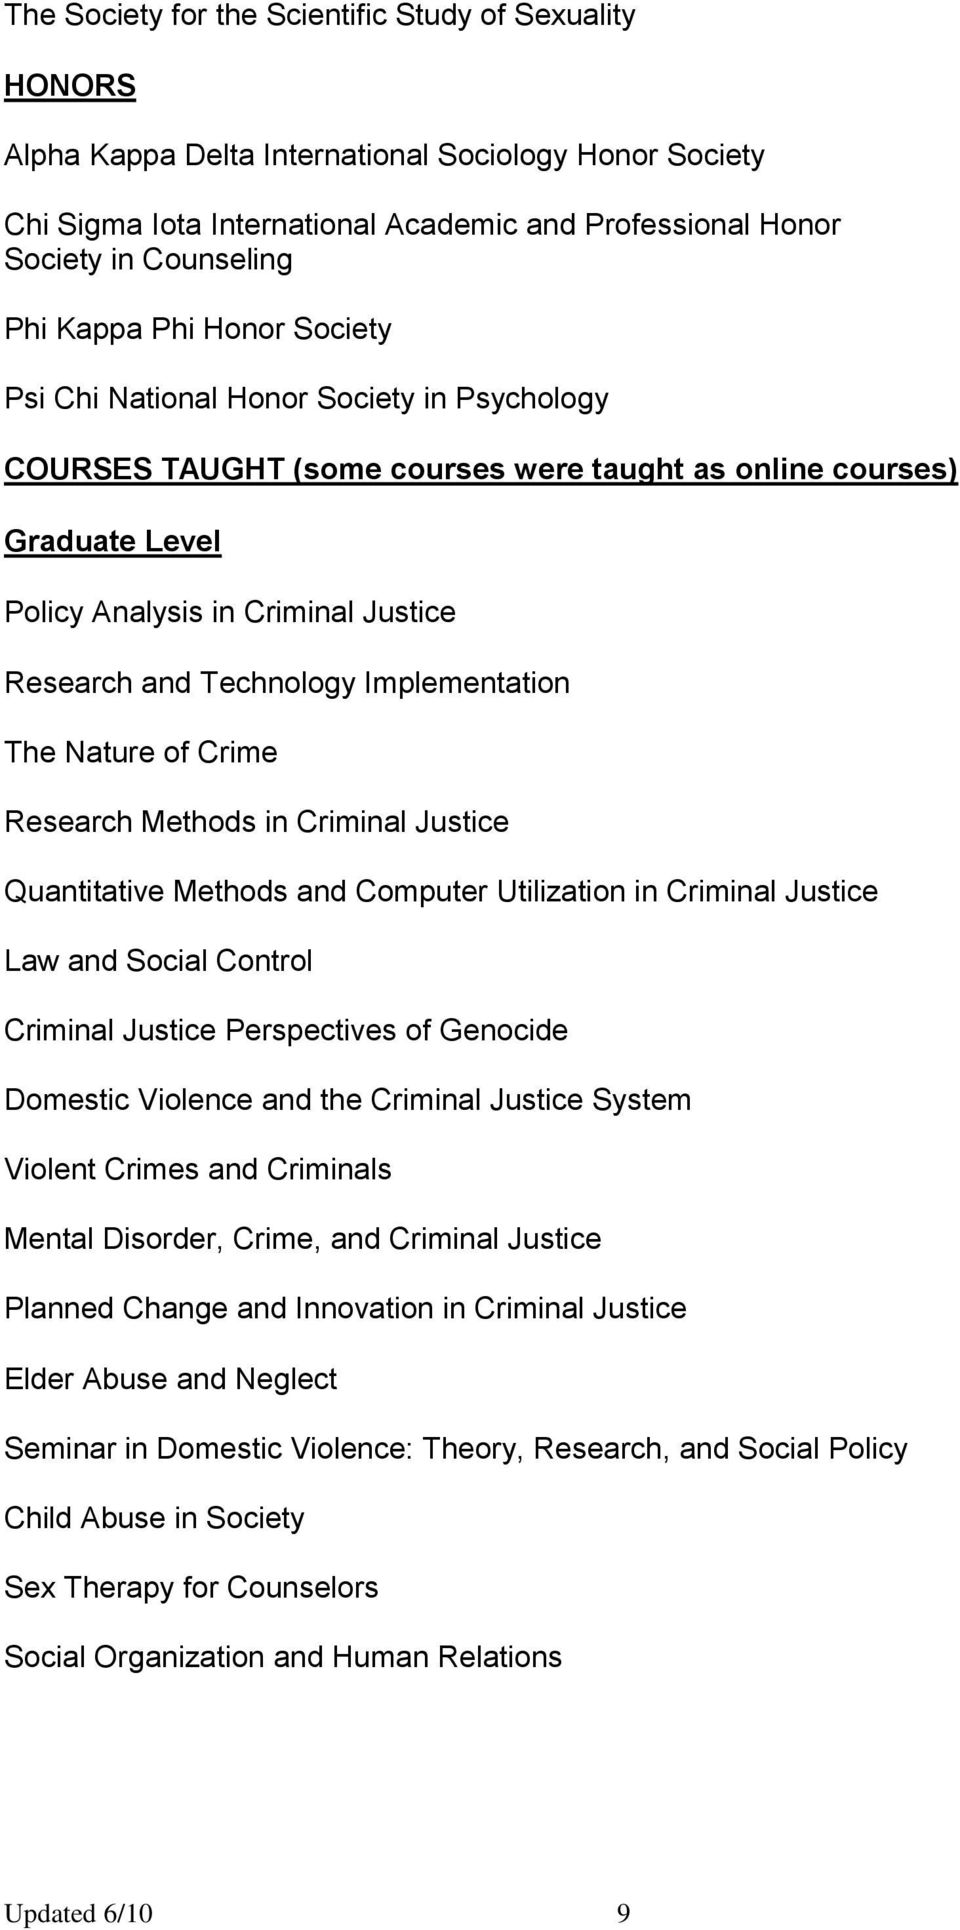 Technology Implementation The Nature of Crime Research Methods in Criminal Justice Quantitative Methods and Computer Utilization in Criminal Justice Law and Social Control Criminal Justice